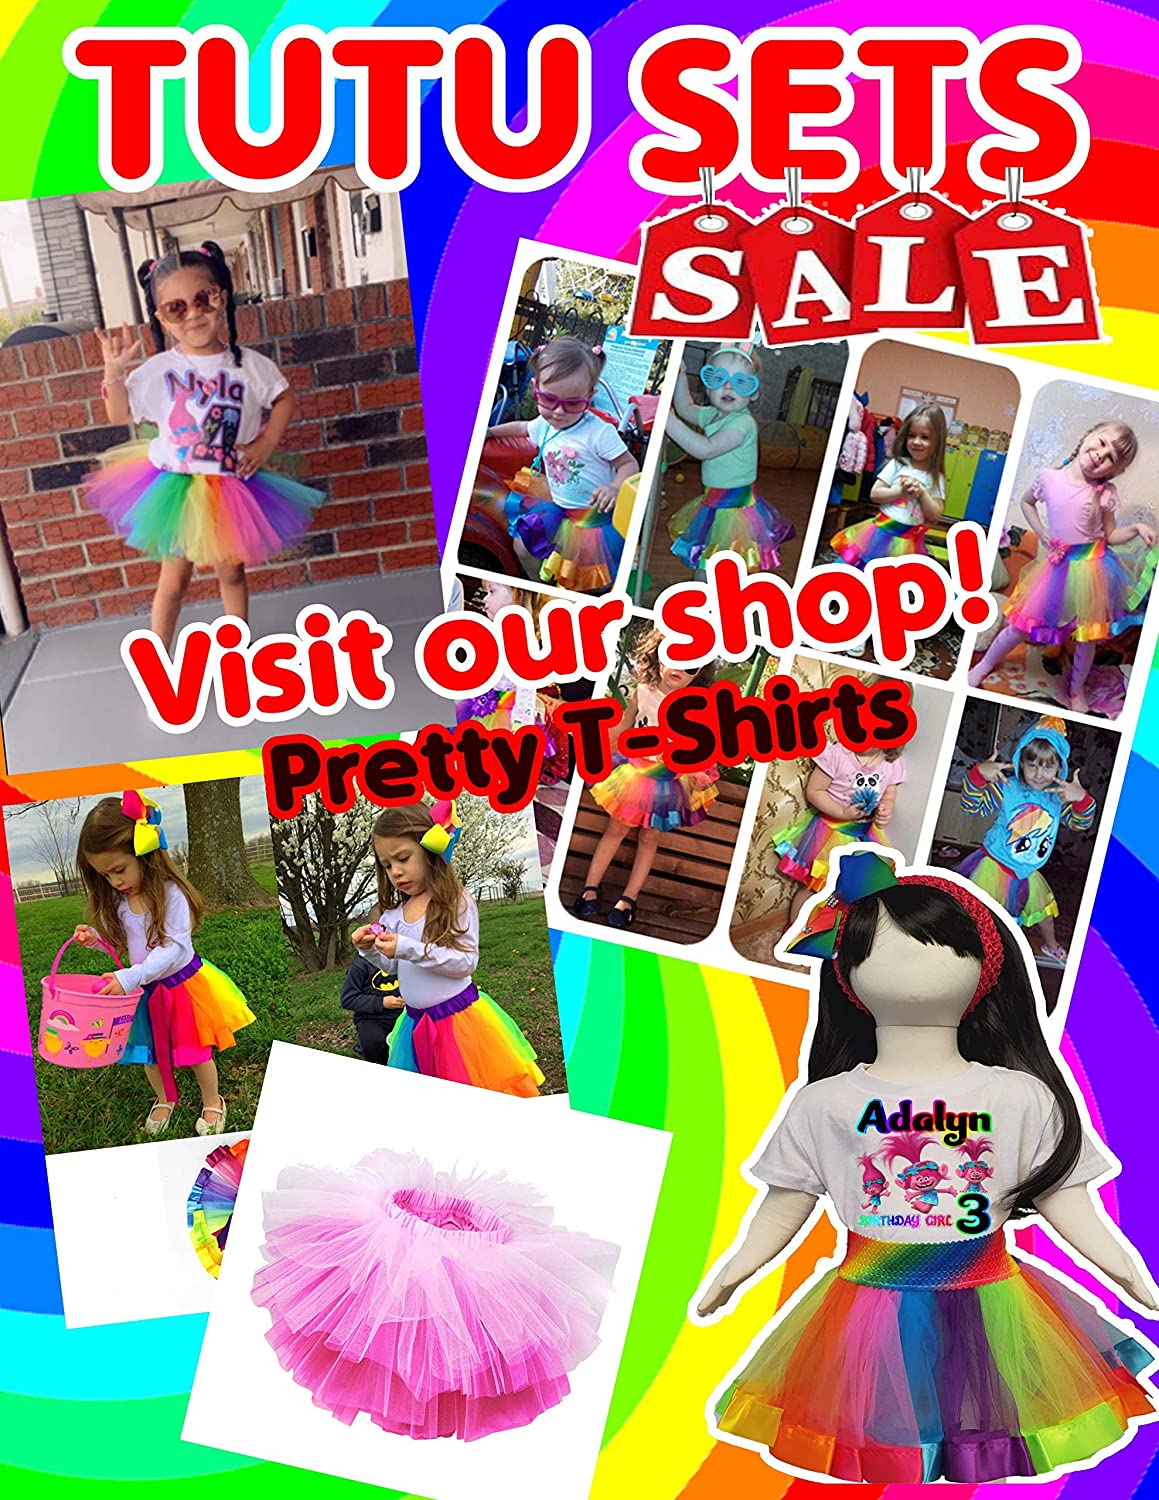 Add Any Name and Age Custom Shirts Girl Bubble Guppies Birthday Bubble Guppies Oona Birthday Shirt